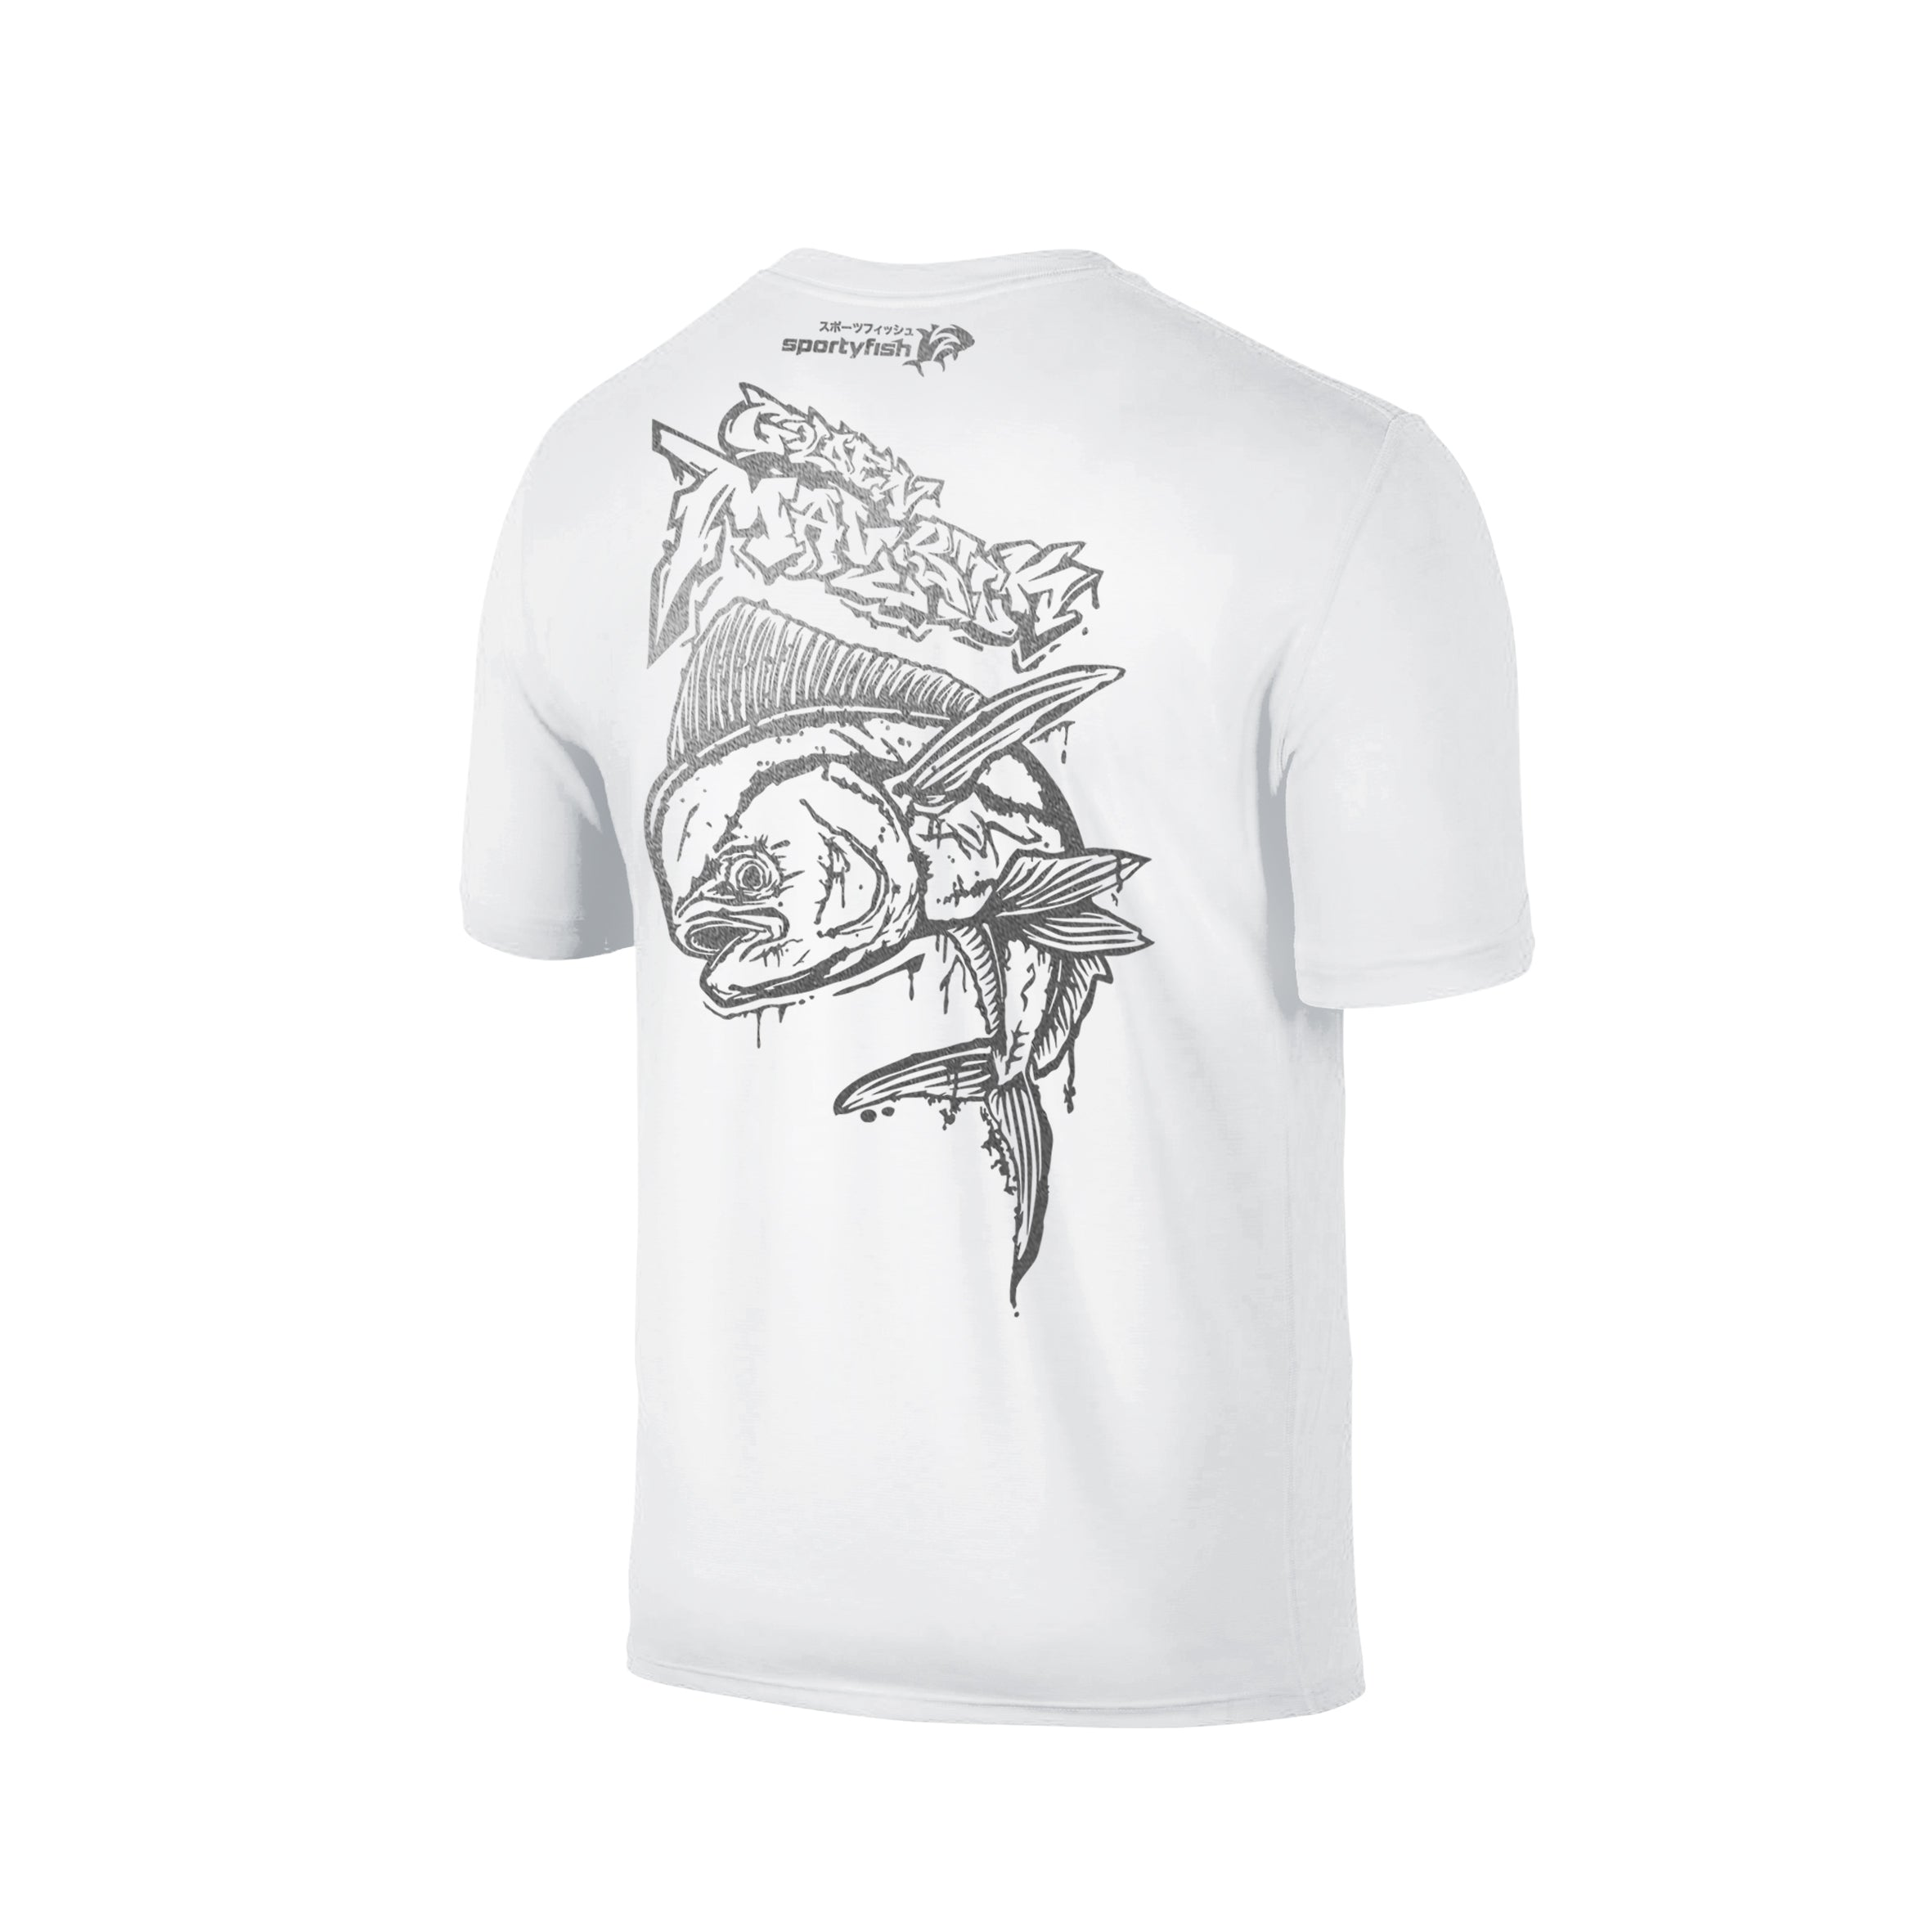 Wildstyle Graffiti Series White T-shirt(back view)Silver: Mahi-mahi